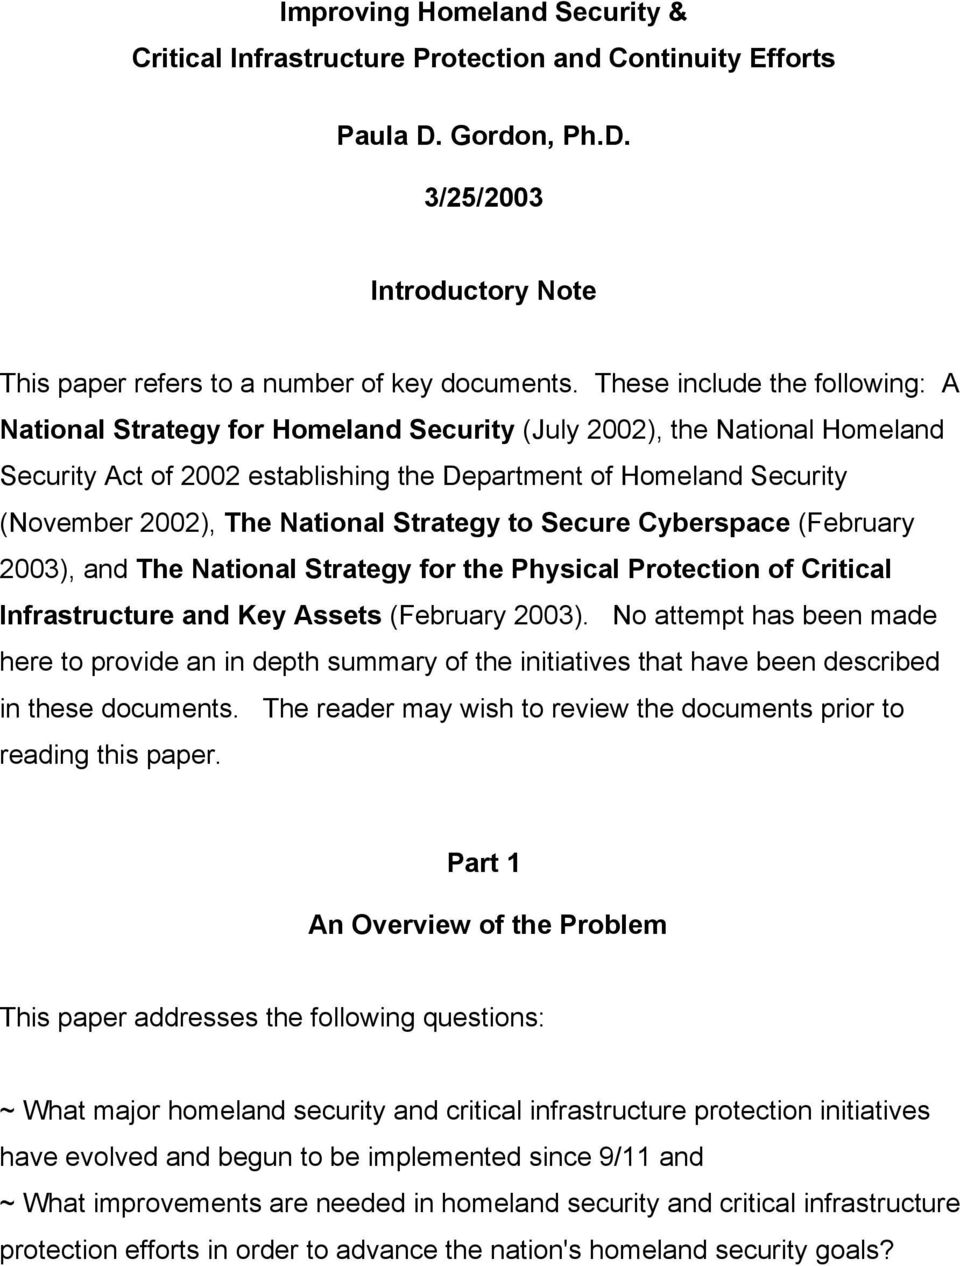 National Strategy to Secure Cyberspace (February 2003), and The National Strategy for the Physical Protection of Critical Infrastructure and Key Assets (February 2003).